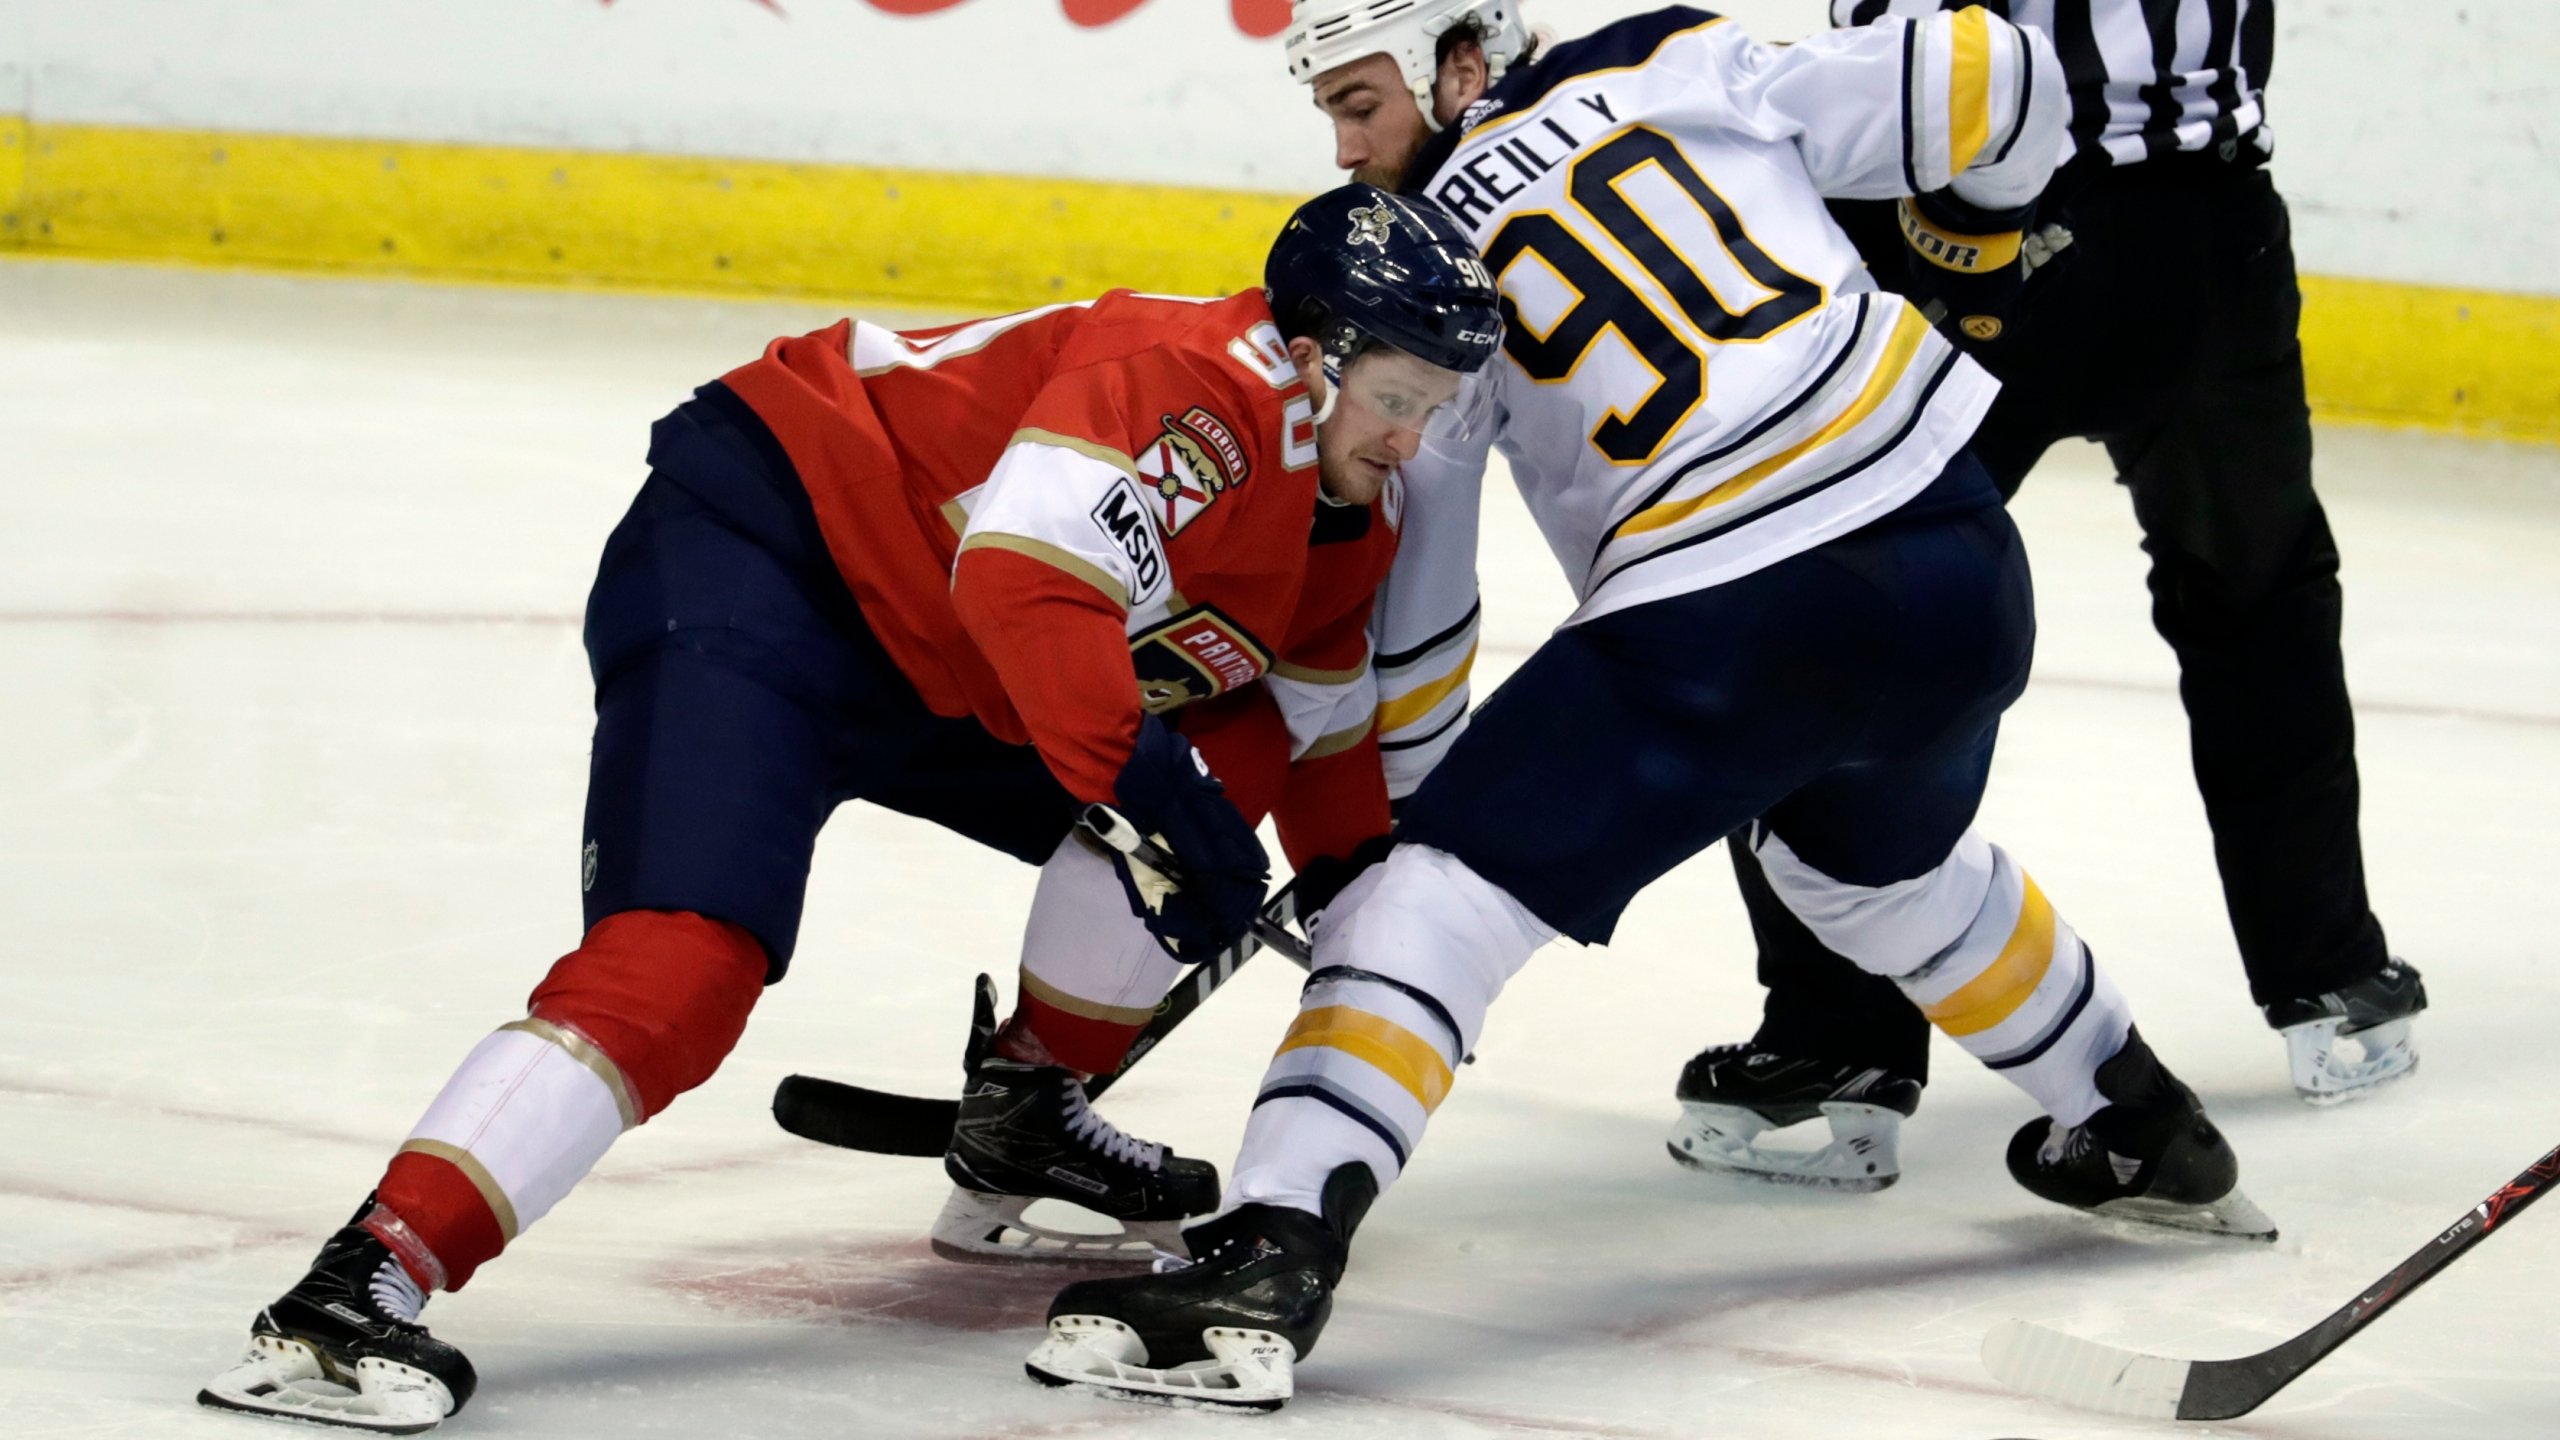 Sabres Panthers Hockey_1530481347667